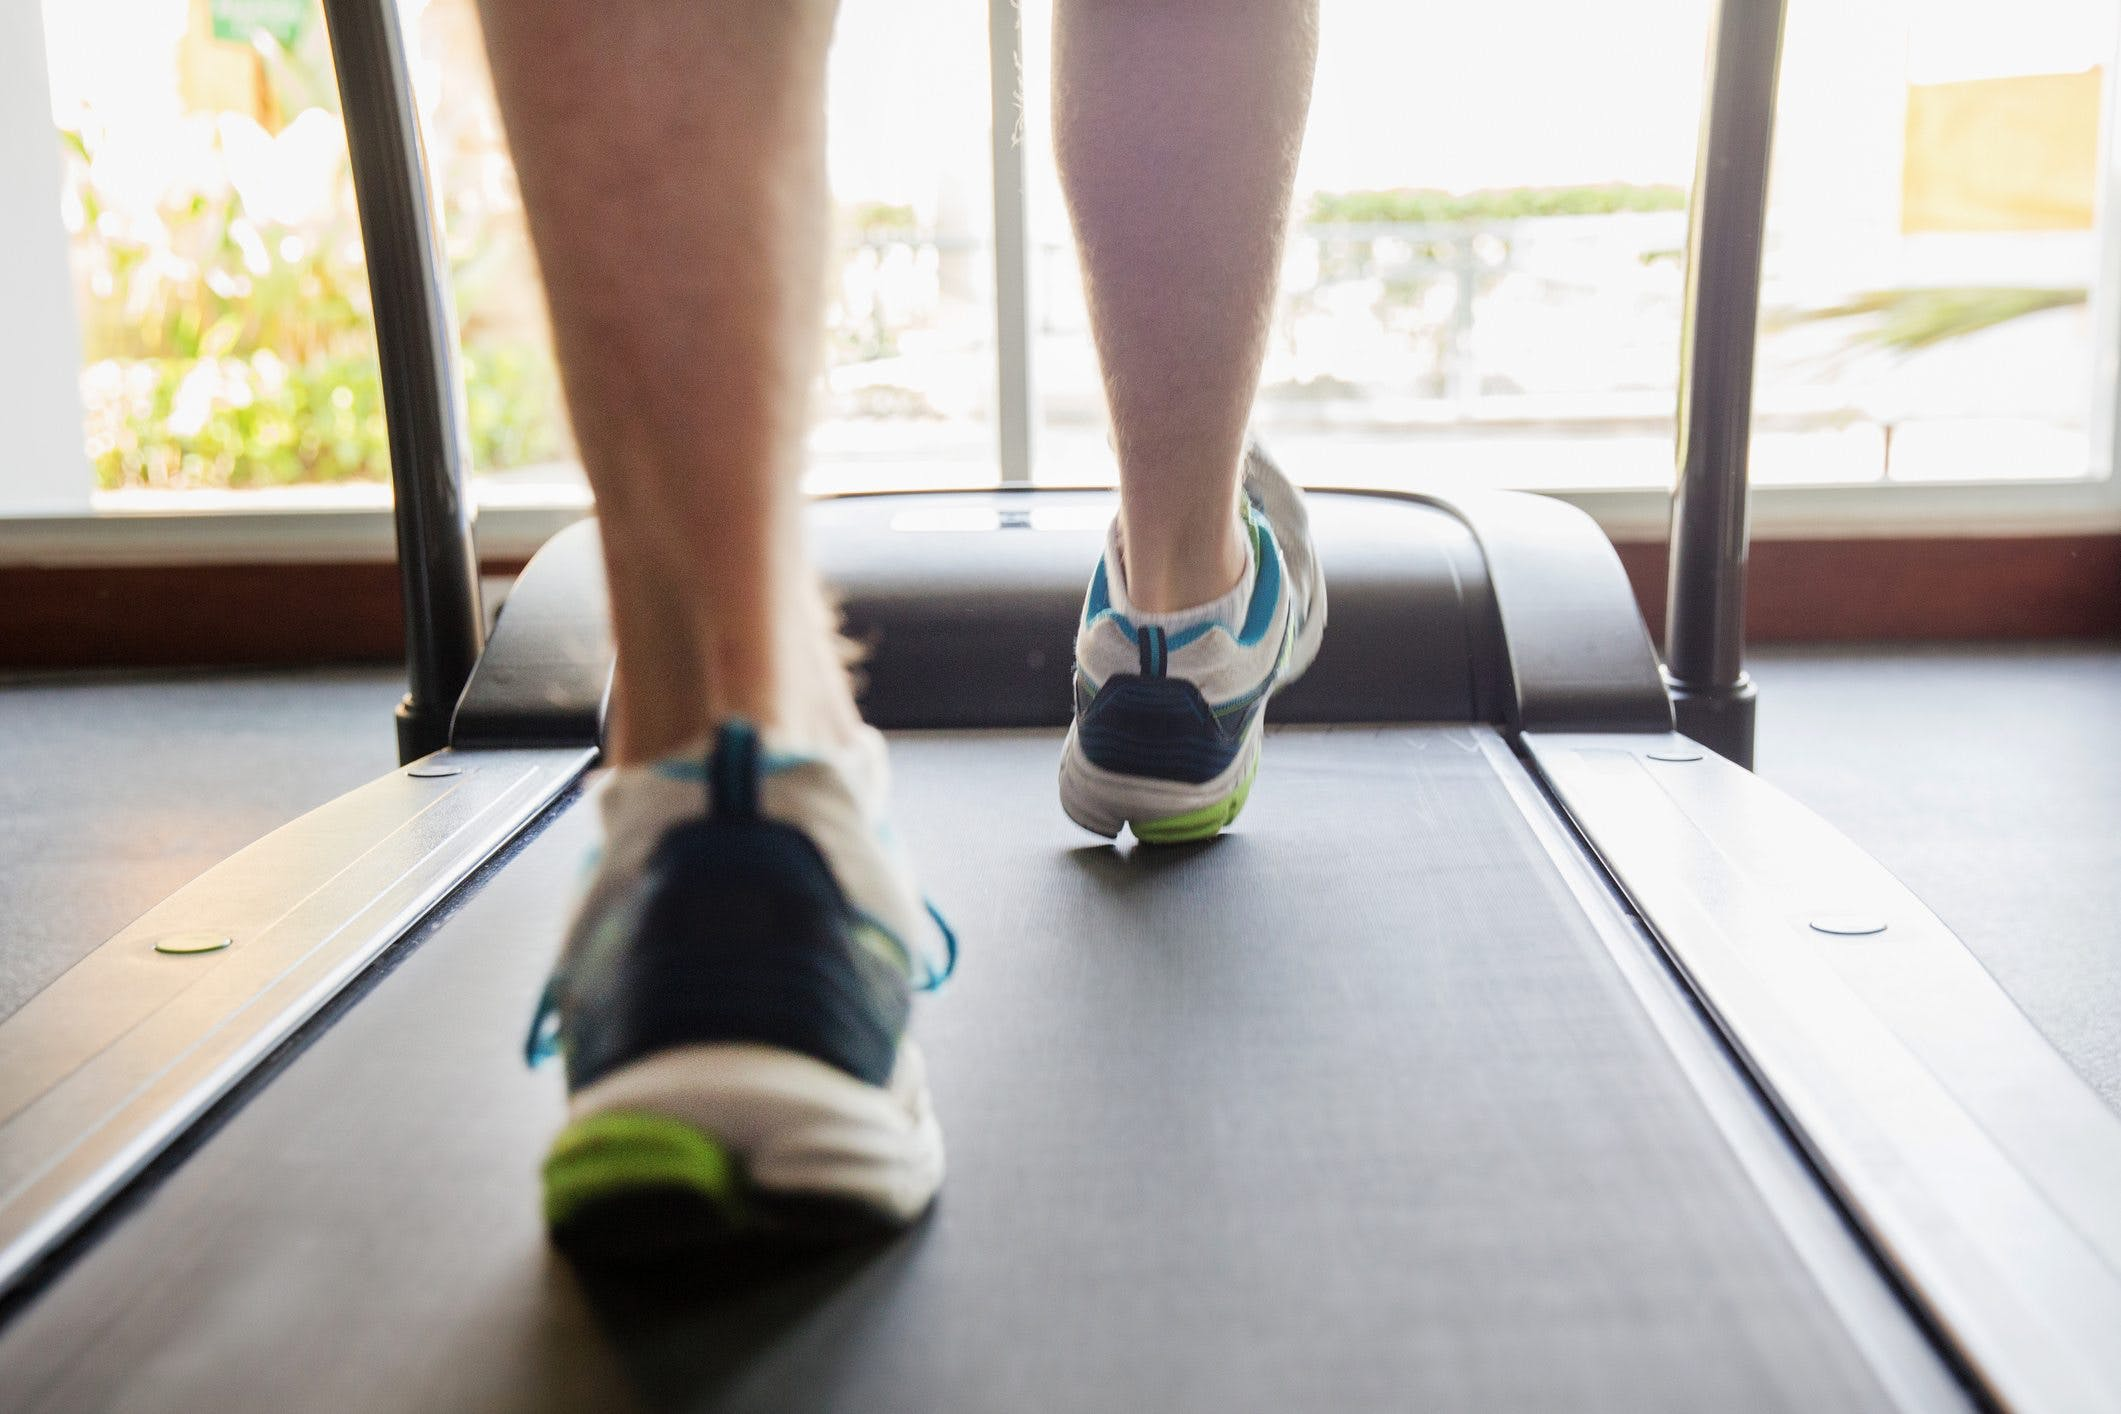 Losing weight by running on treadmill